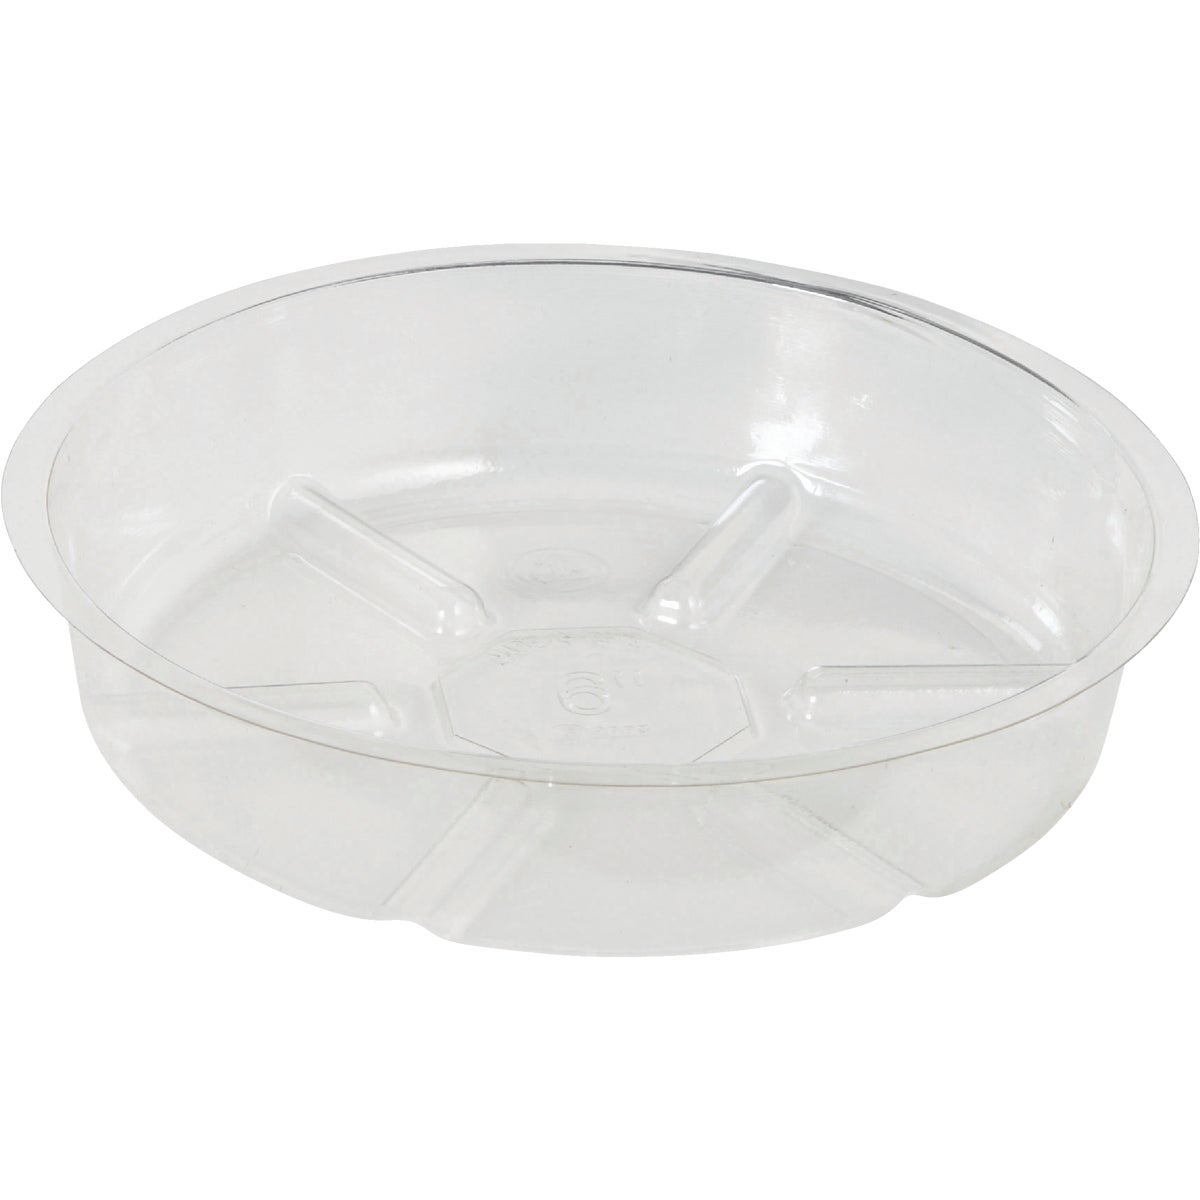 "6"" CLEAR VINYL SAUCER - VS6 by Woodstream Corp"